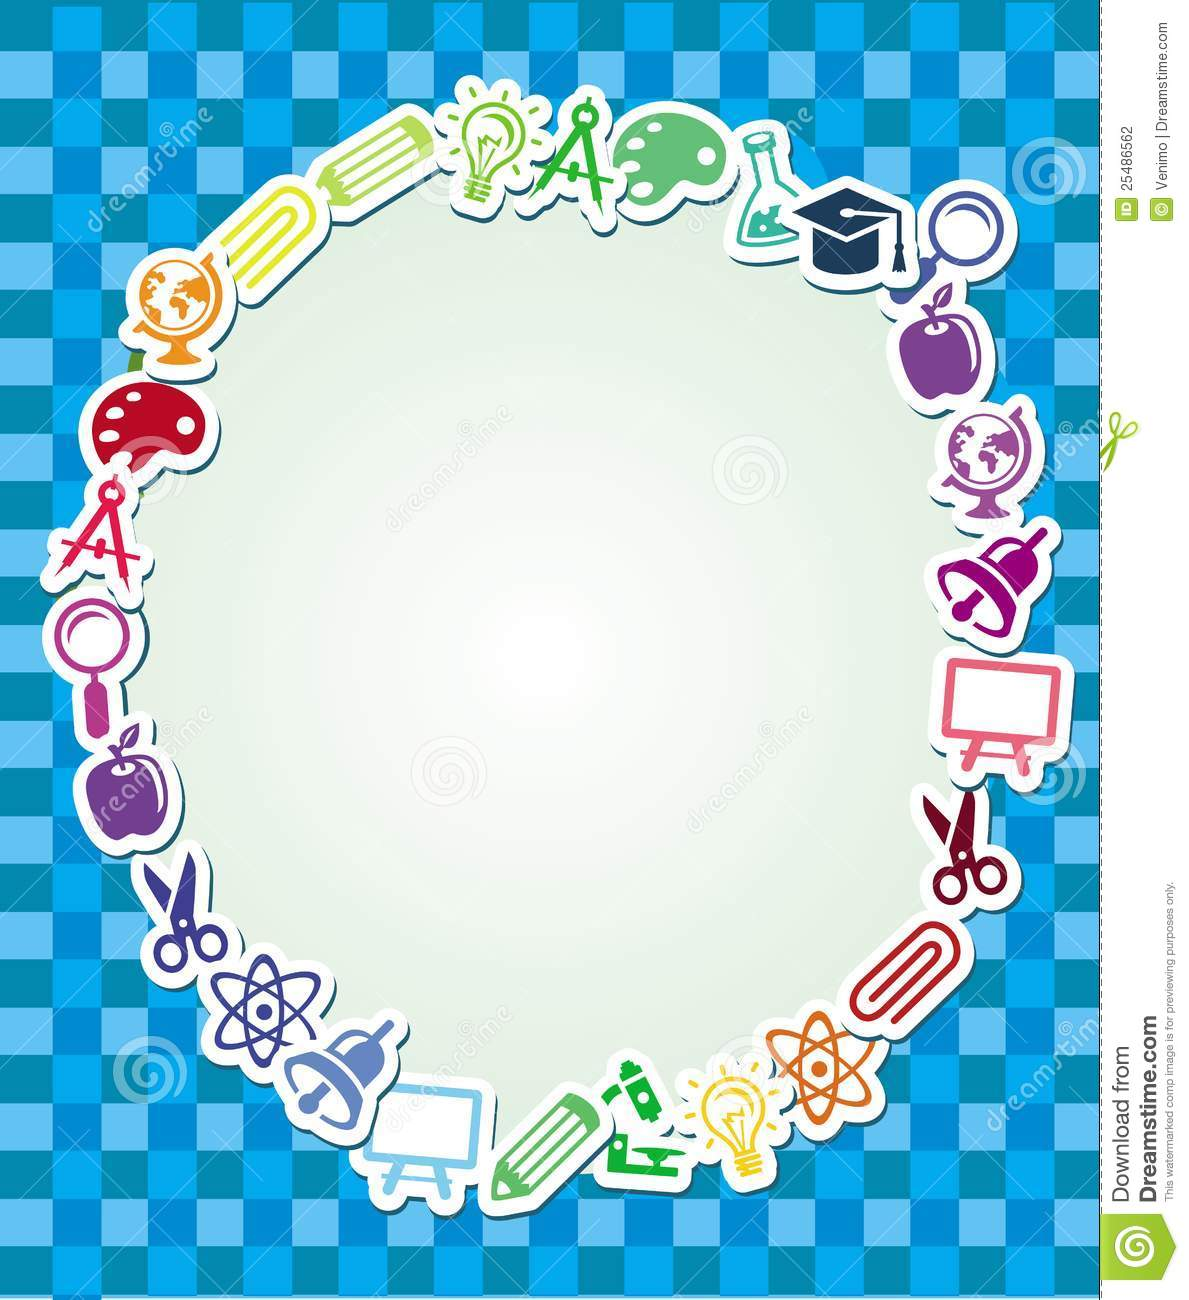 Frame With Education And Science Sticker Stock Vector - Illustration ...